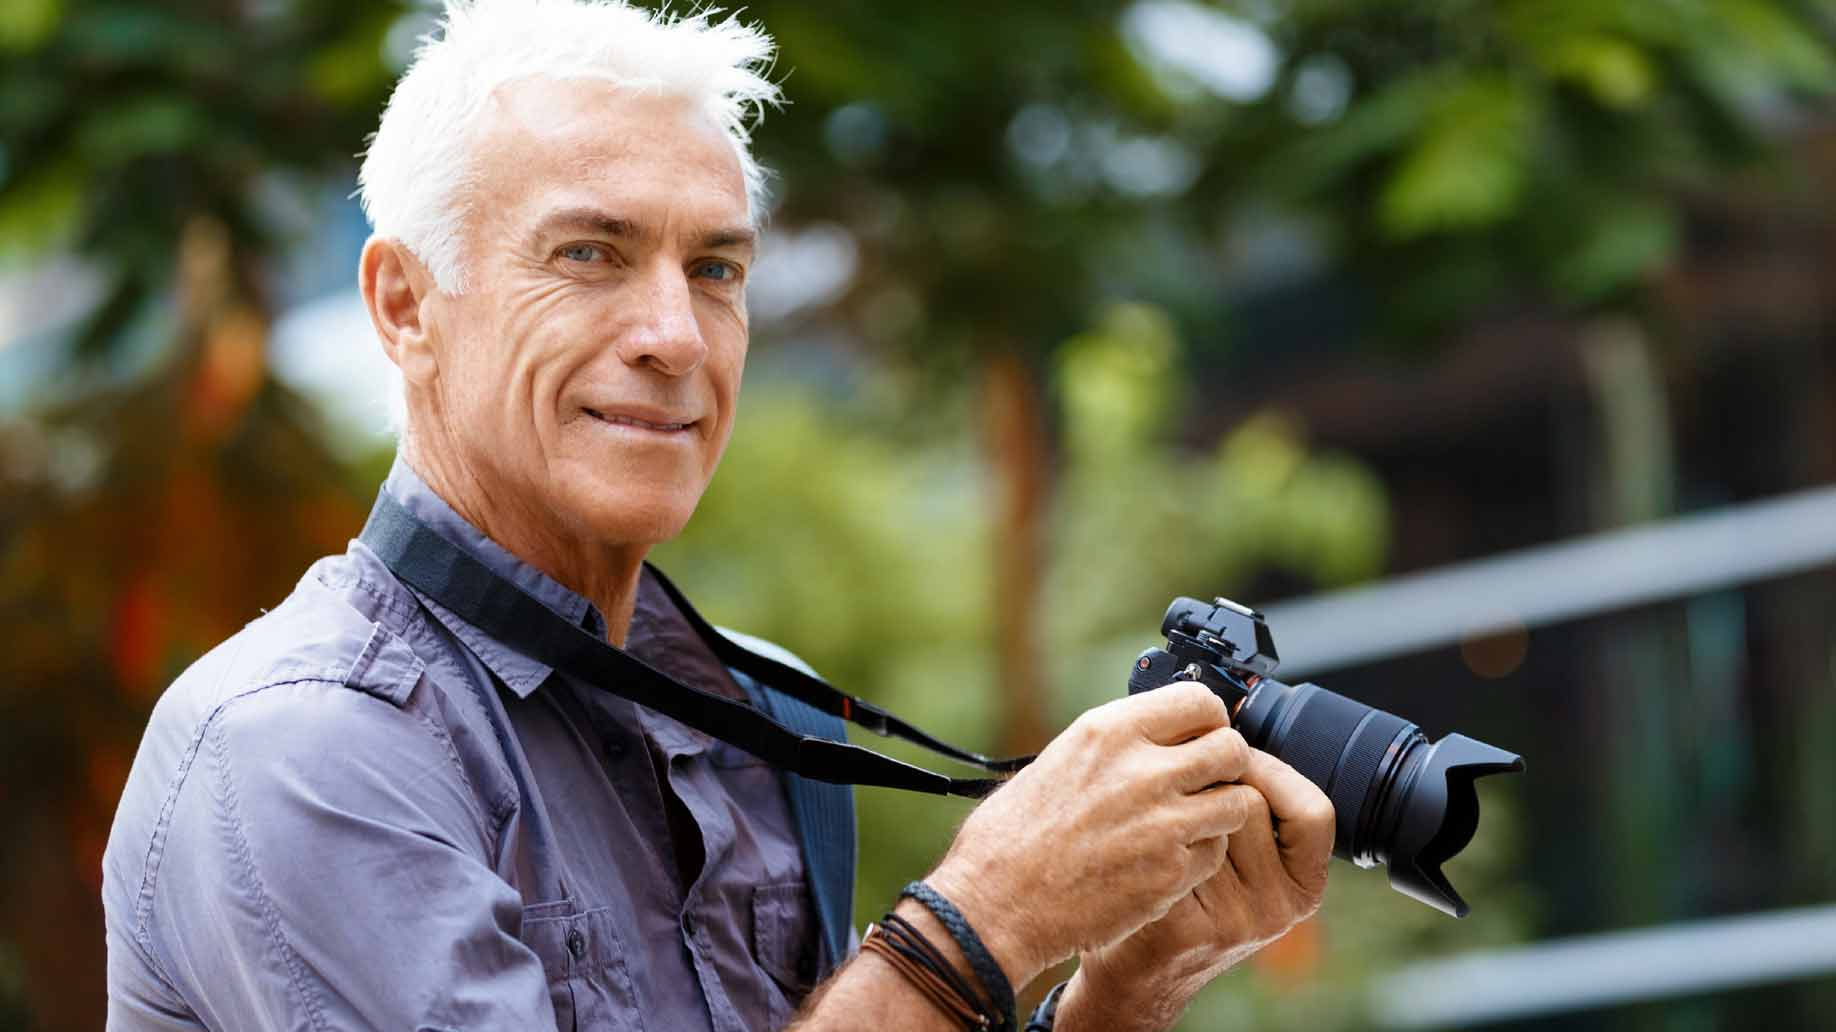 elderly man working as a freelance photographer